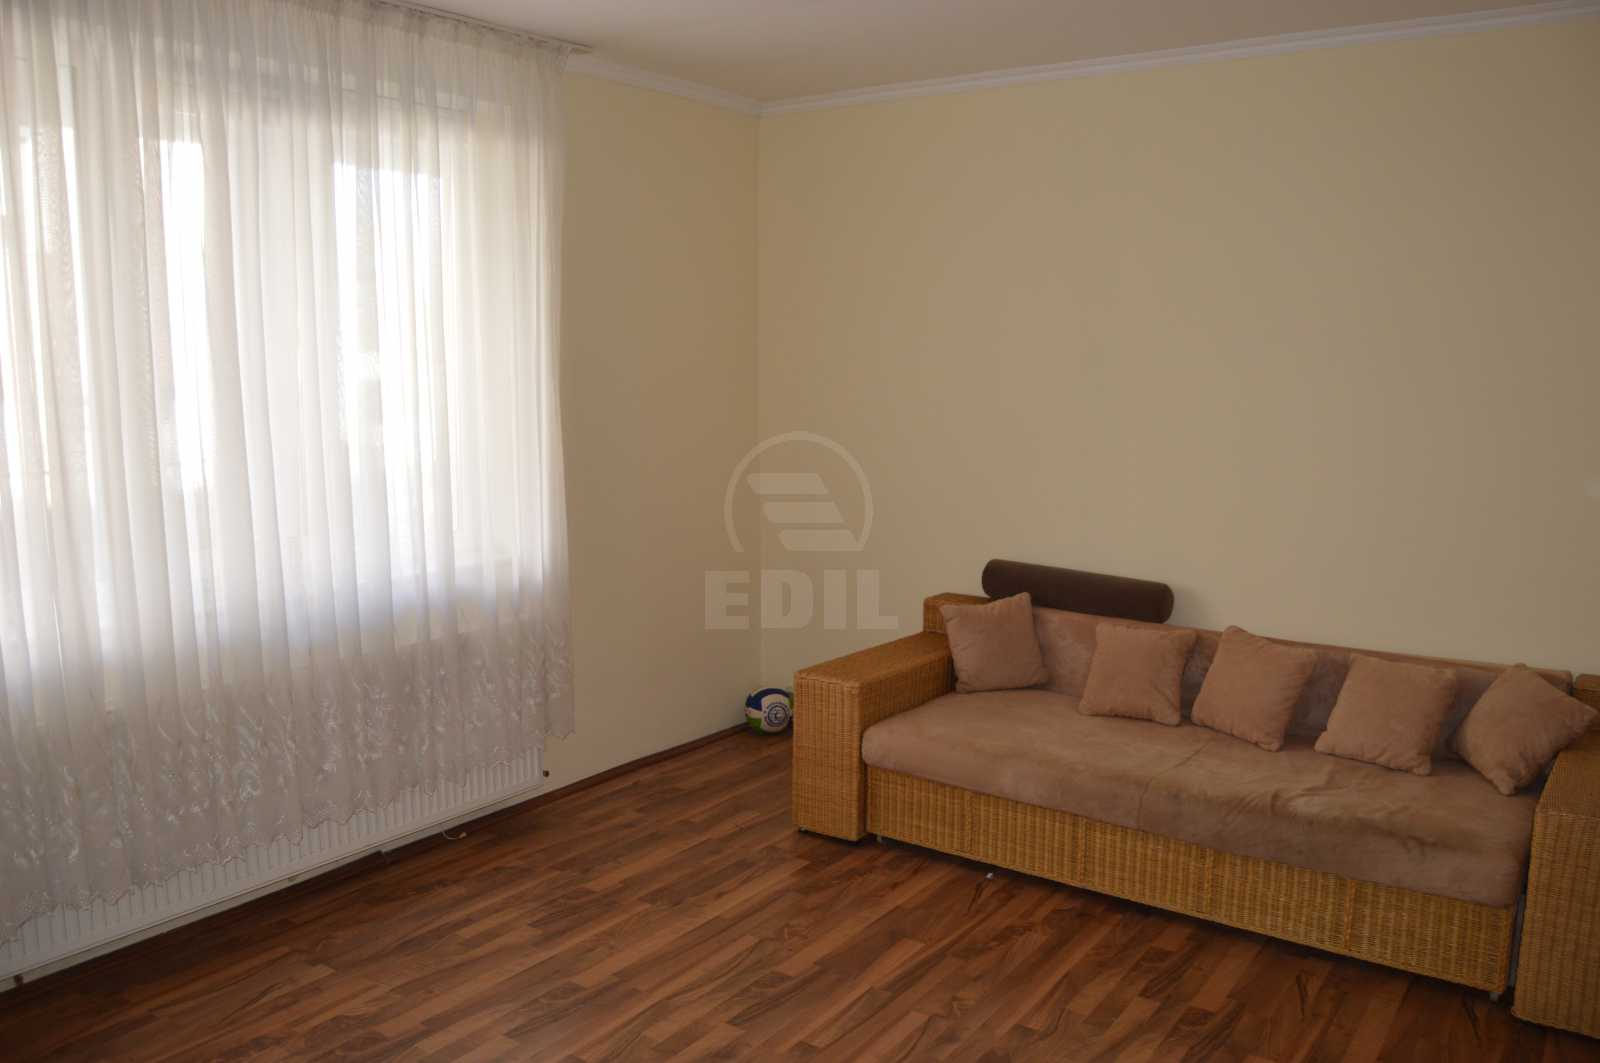 House for sale 3 rooms, CACJ284246-8